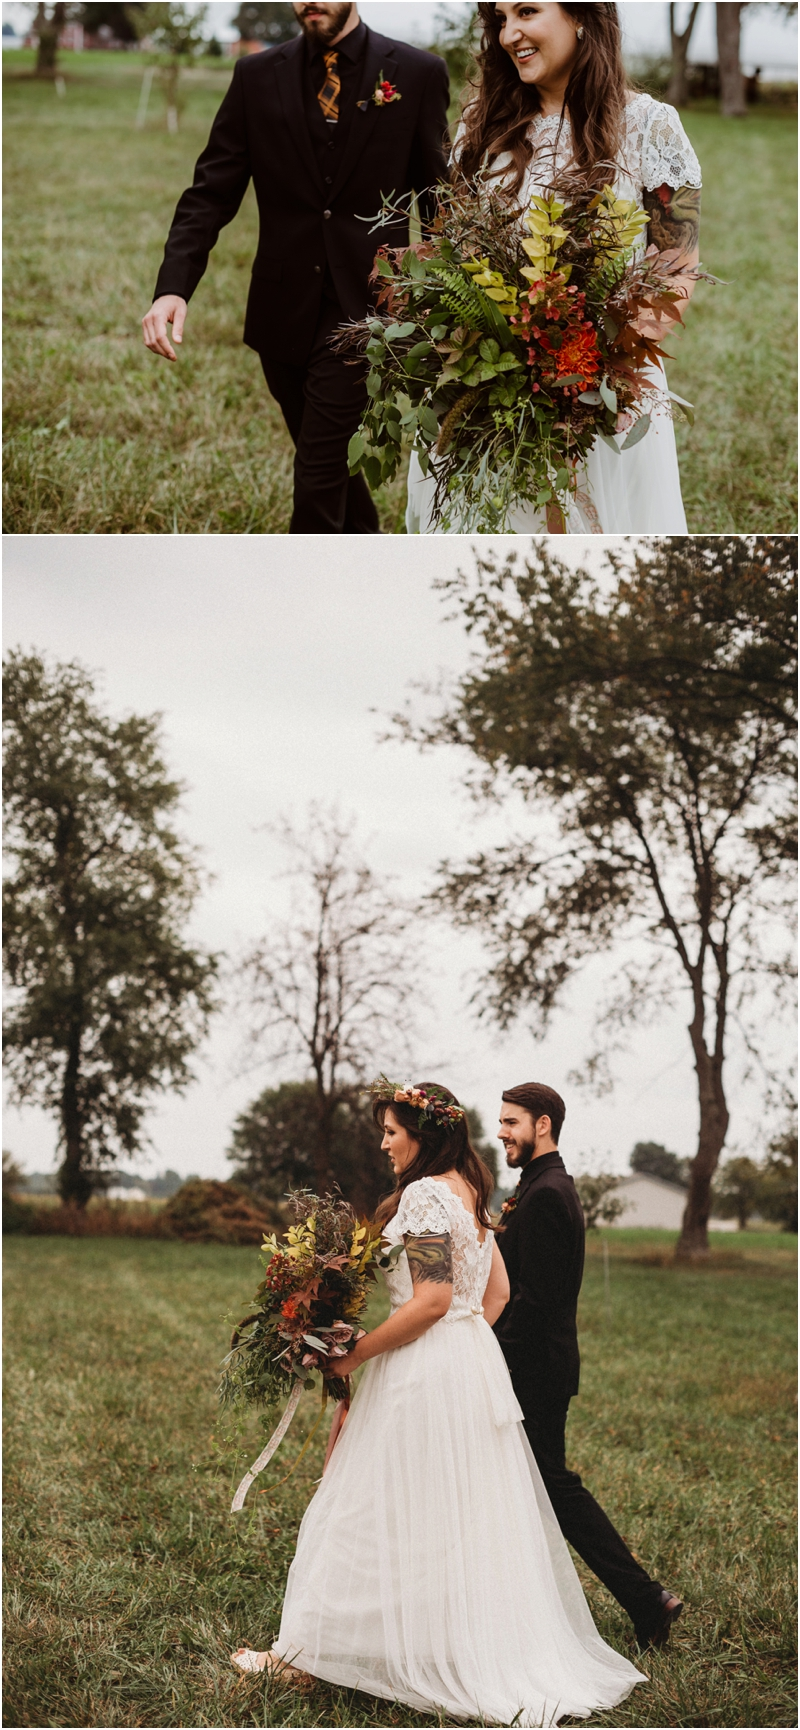 MichiganWeddingPhotographer-2791.jpg